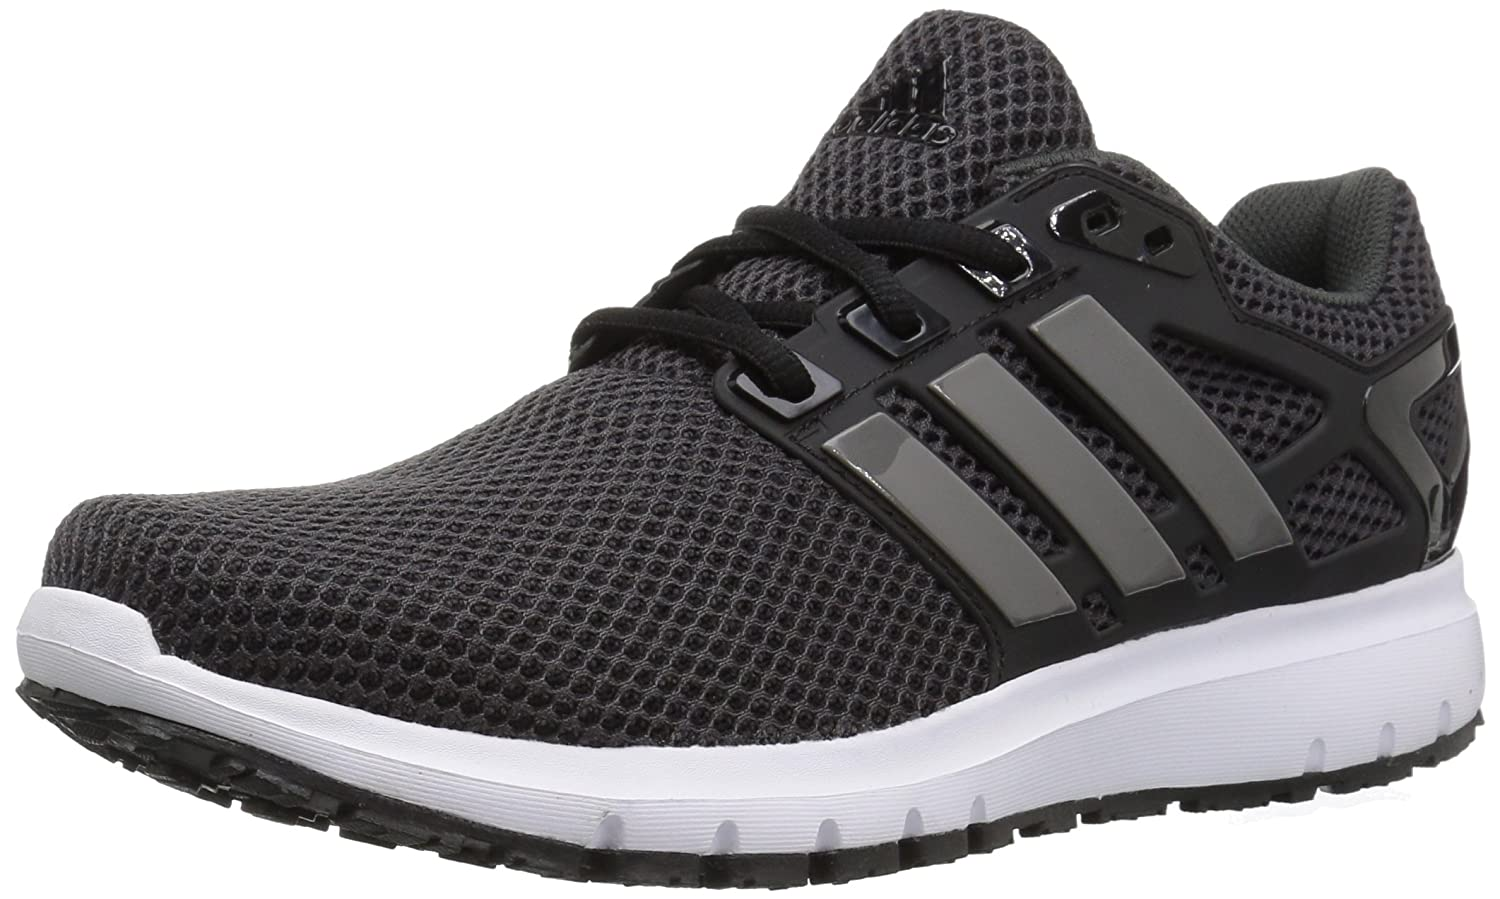 adidas Women's Energy Cloud W Running Shoe B01NBBYB0D 10.5 B(M) US|Utility Black/Trace Grey /Black